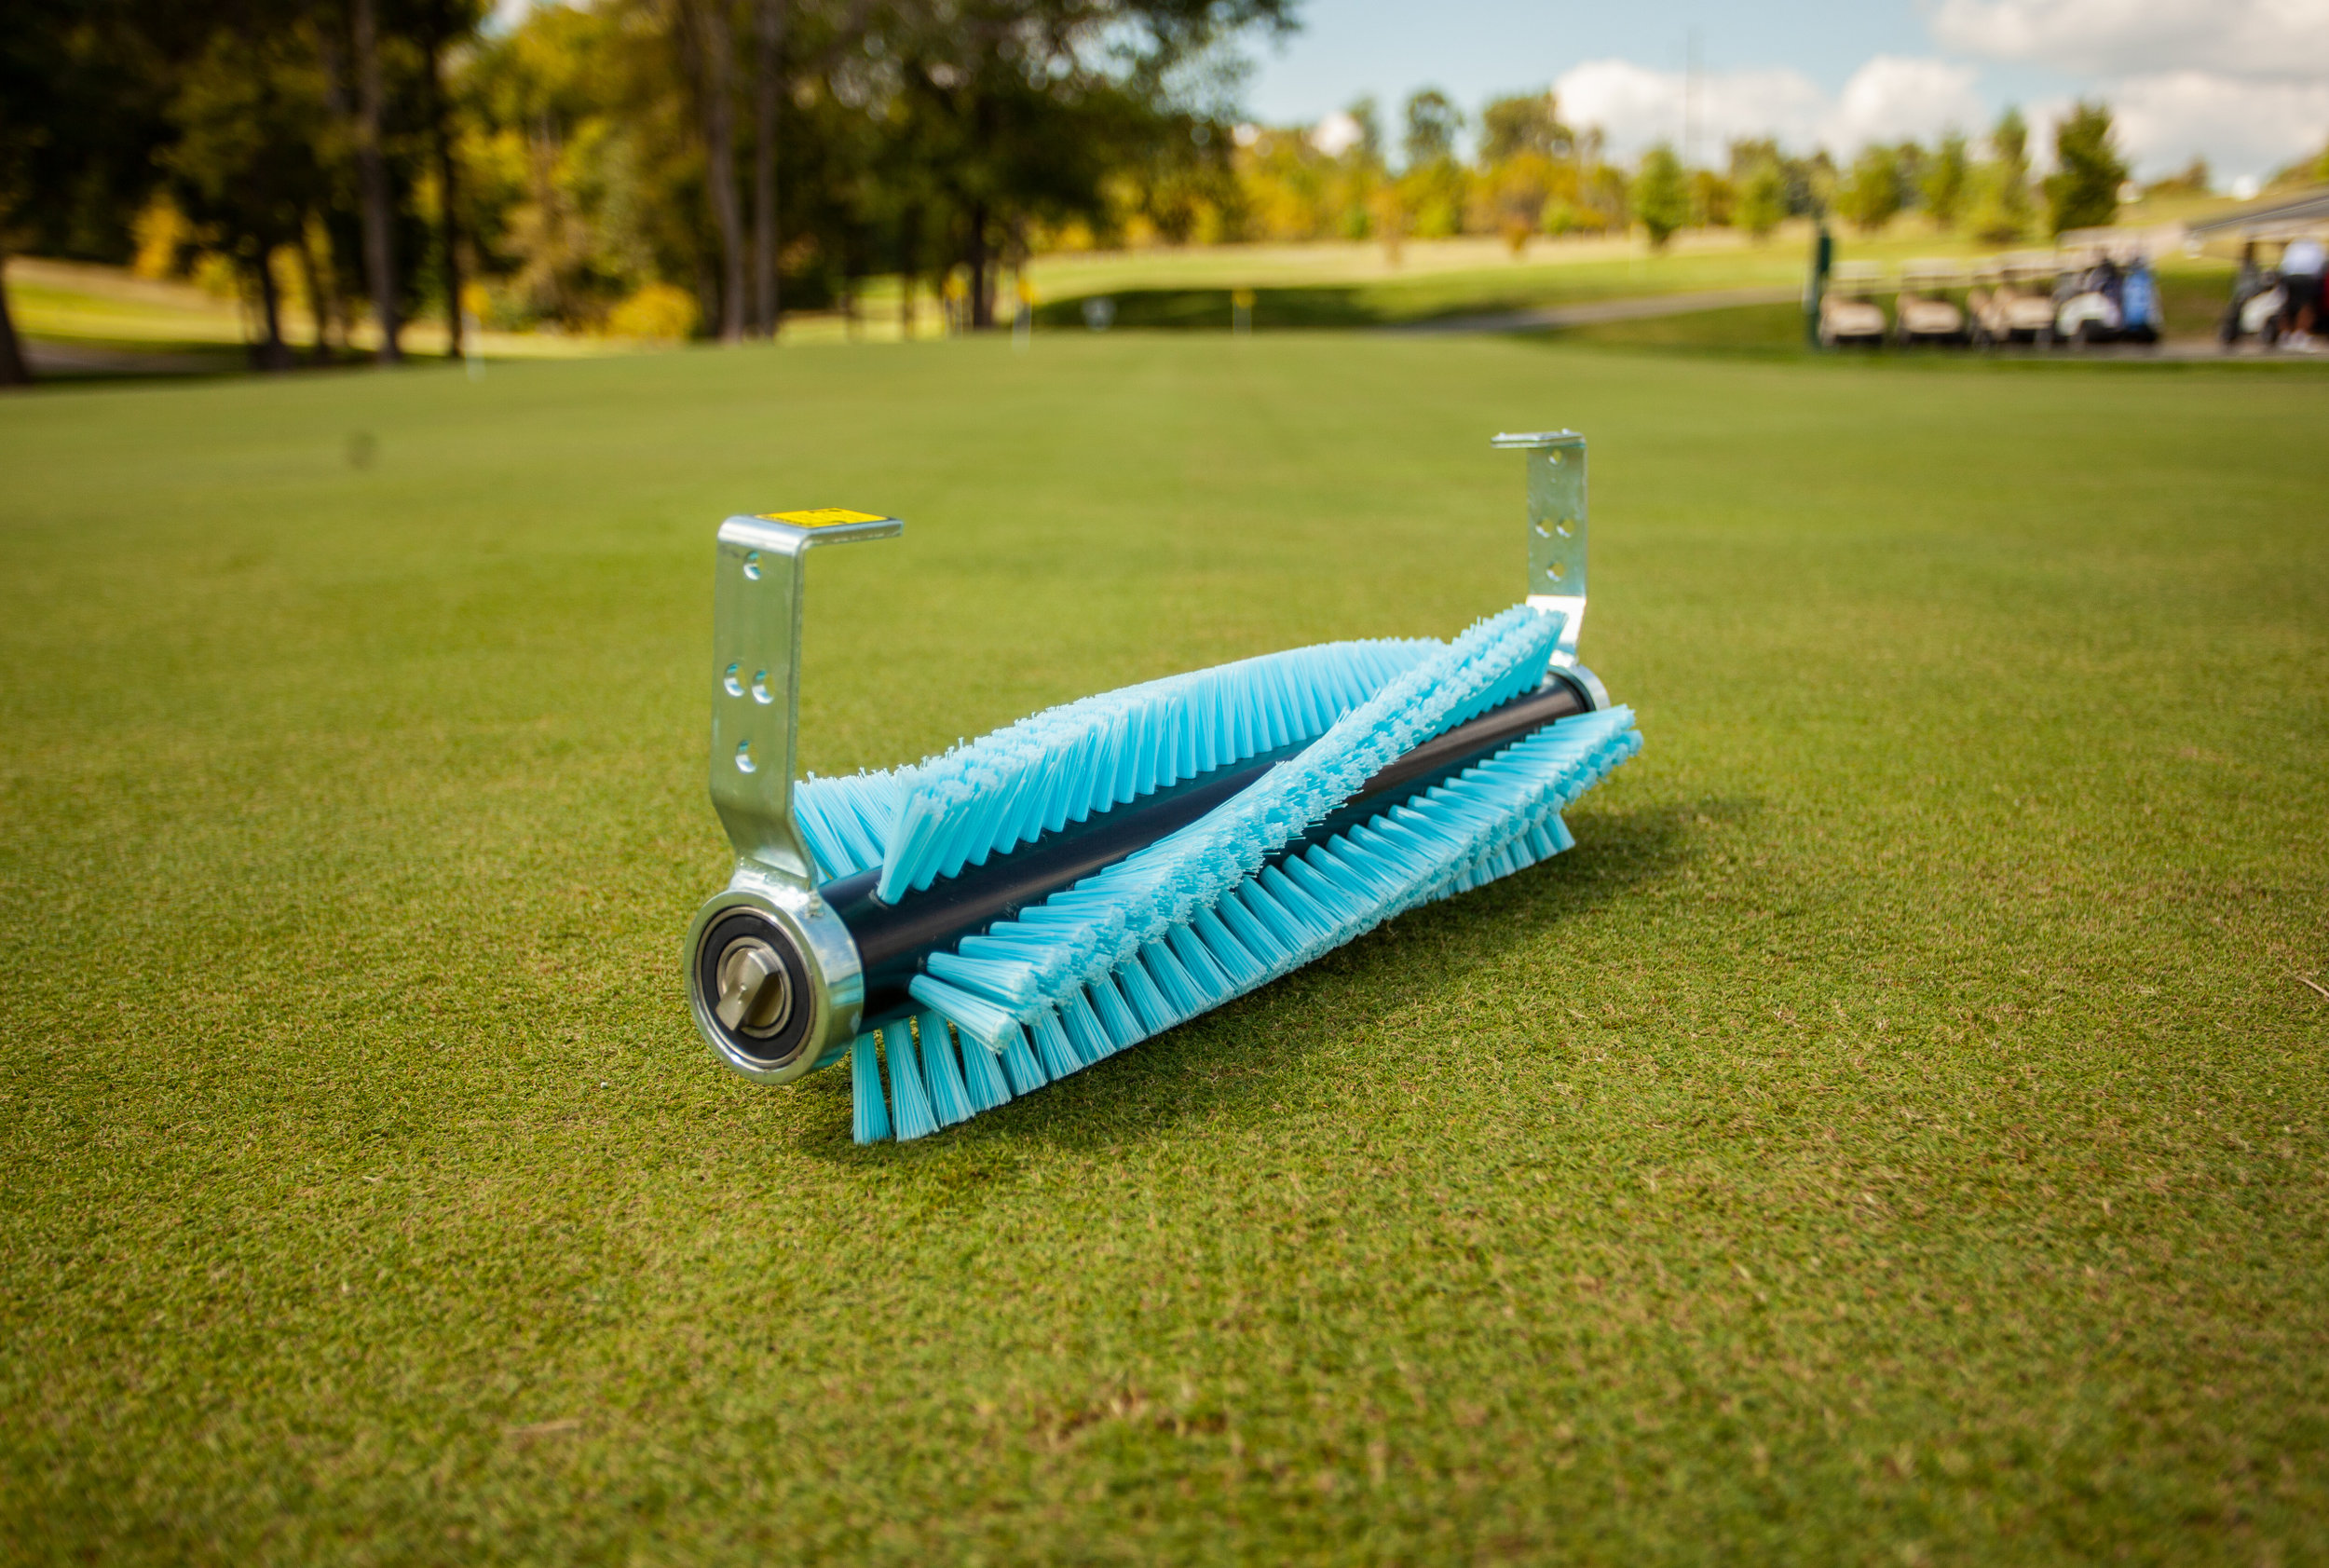 Firm Vacu-Brush™ - We like to provide options for our customers, so we now have three types of Vacu-Brushes™ available for different applications. Use our firm brush to groom the turf, collect large debris, and remove poa annua seeds along with excess topdressing. To incorporate sand topdressing, remove your mower's grass baskets and use the Vacu-Brush™ to work the sand into the canopy.Usual Working Depth: 0 – Bristles should just lightly skim the top of the turf.